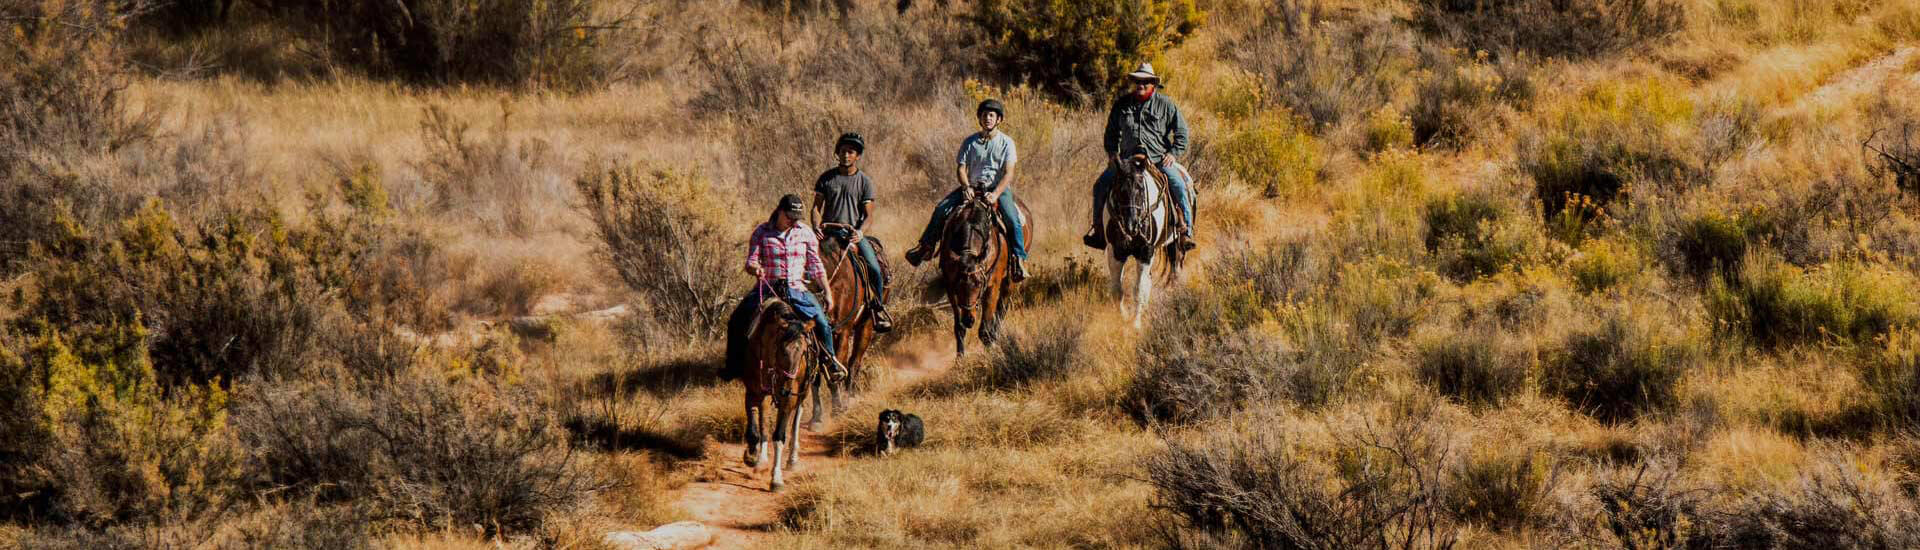 Oxbow-Individual-Therapy-trail-ride